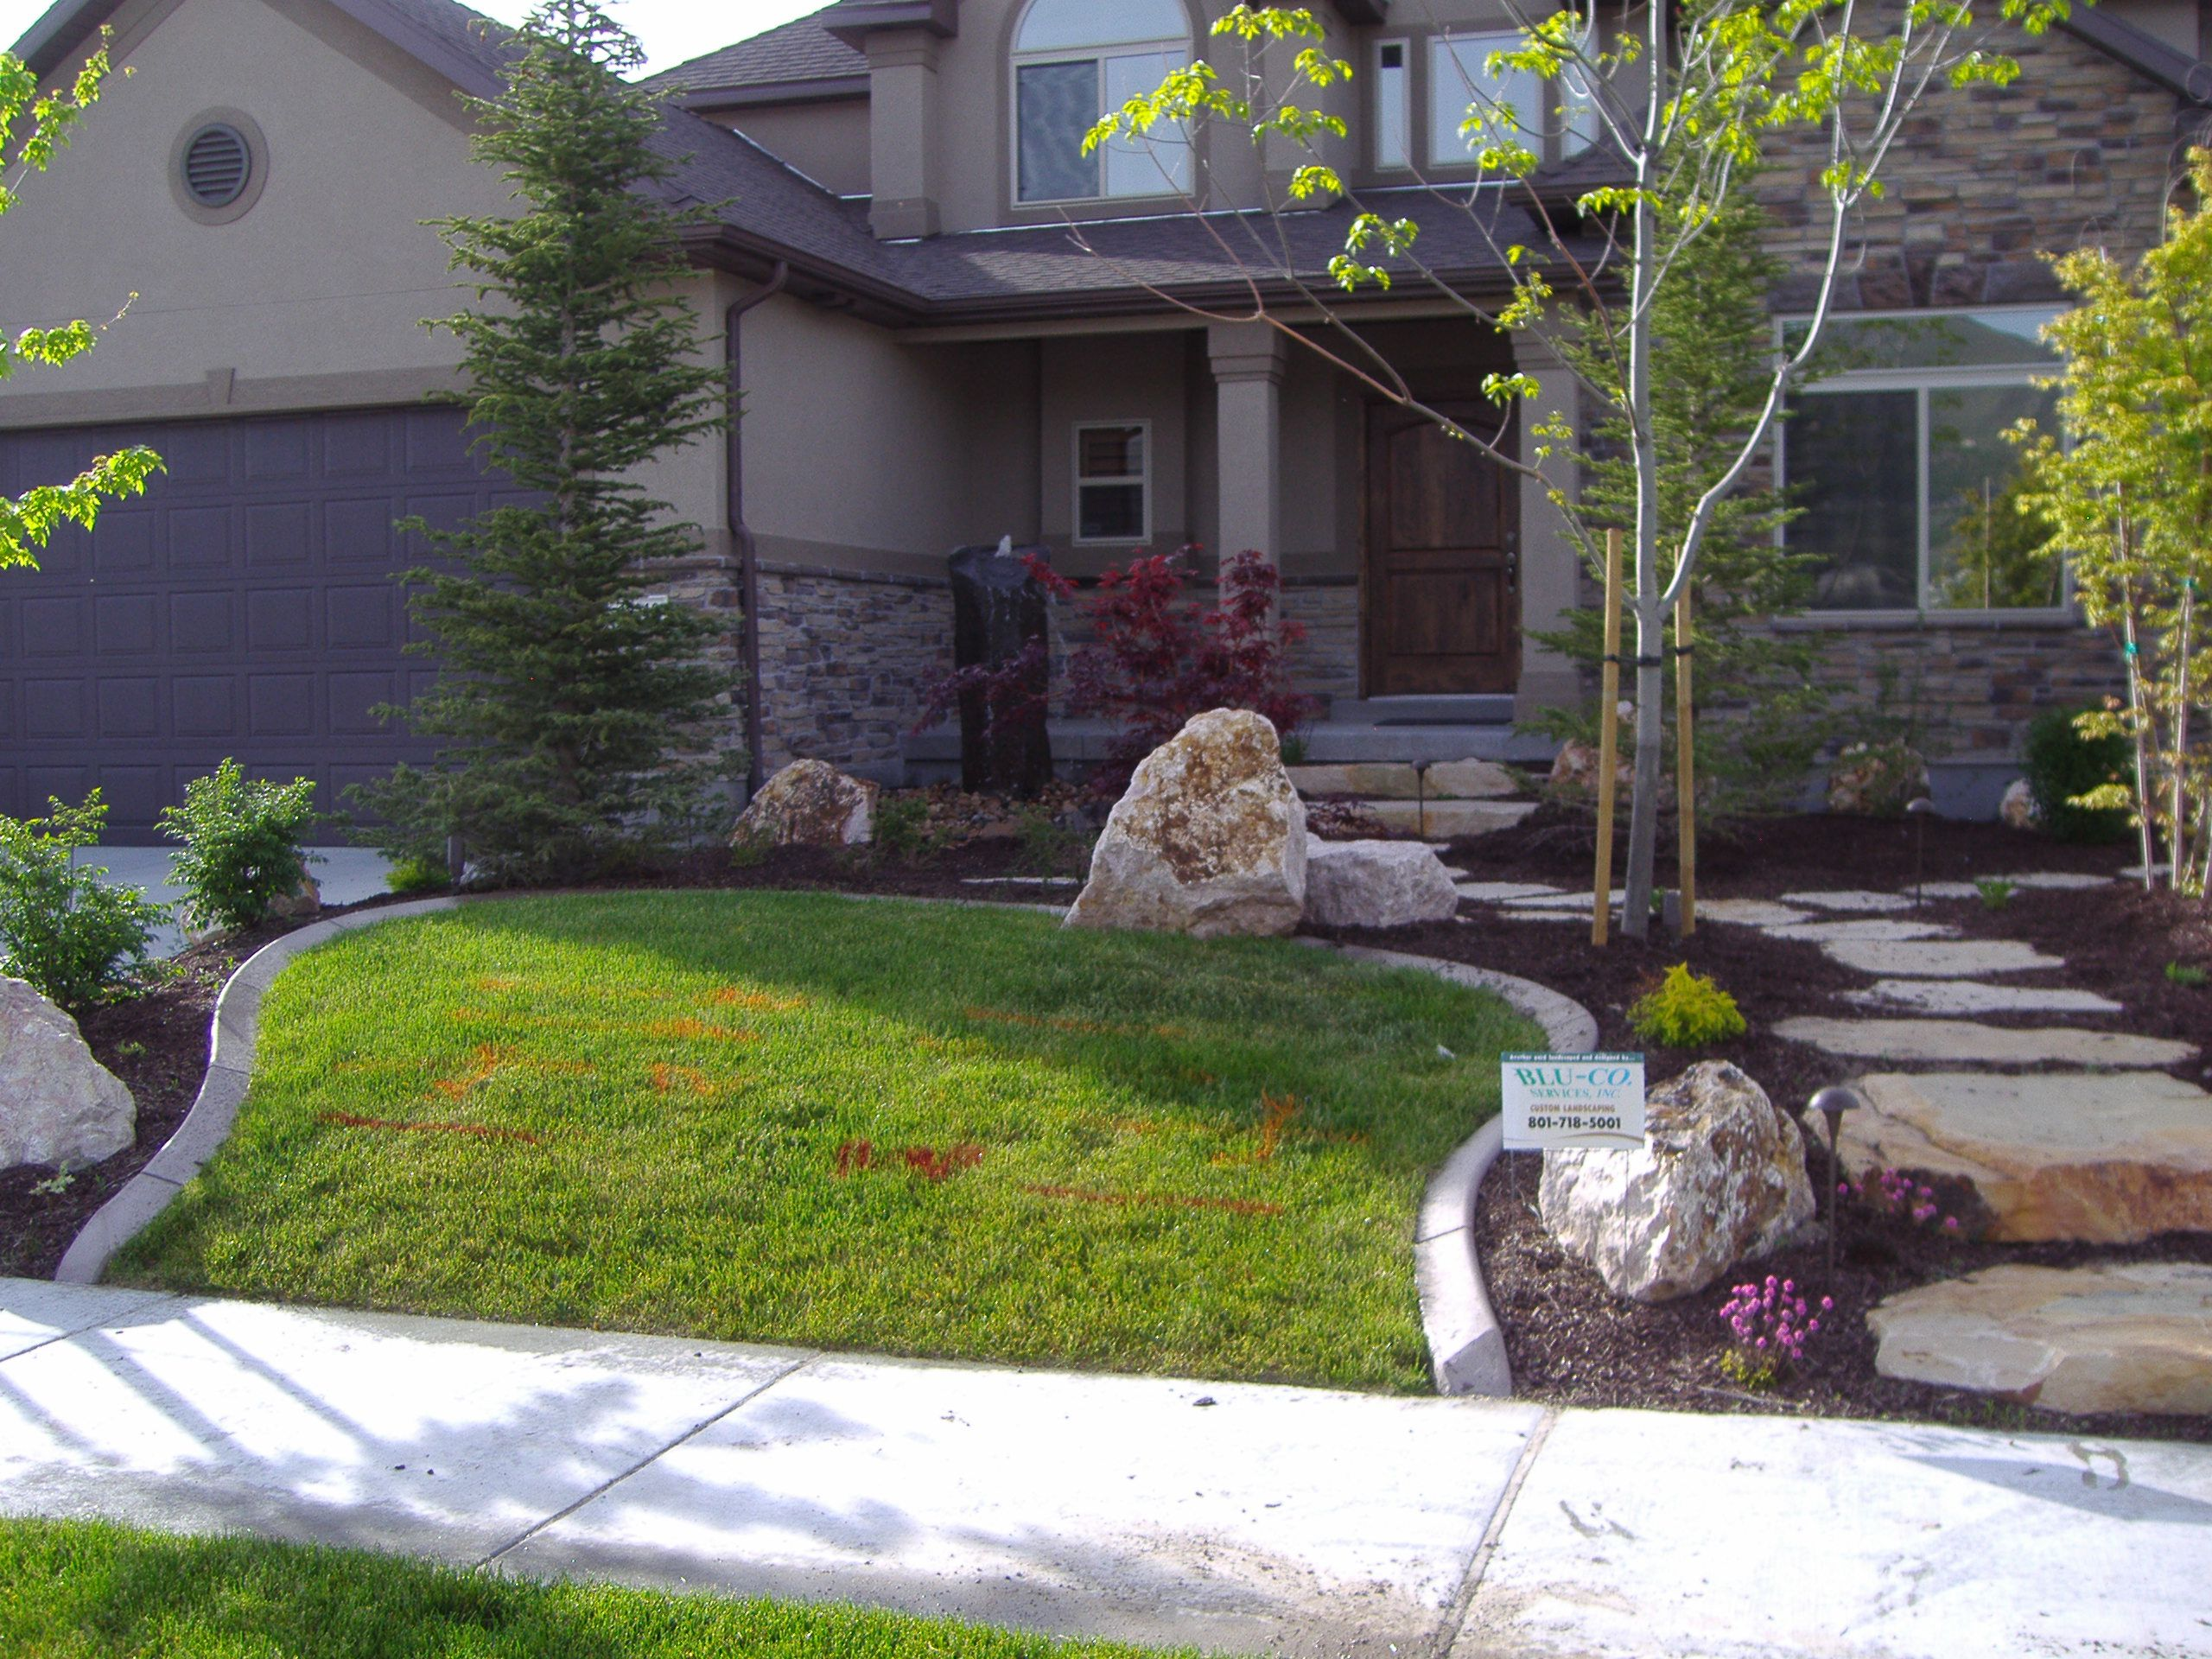 Exceptionnel Magnificent Stone Path Also Grasses And Trees For Yard Decor · Marvelous  Design Of Small Yard Landscaping ...